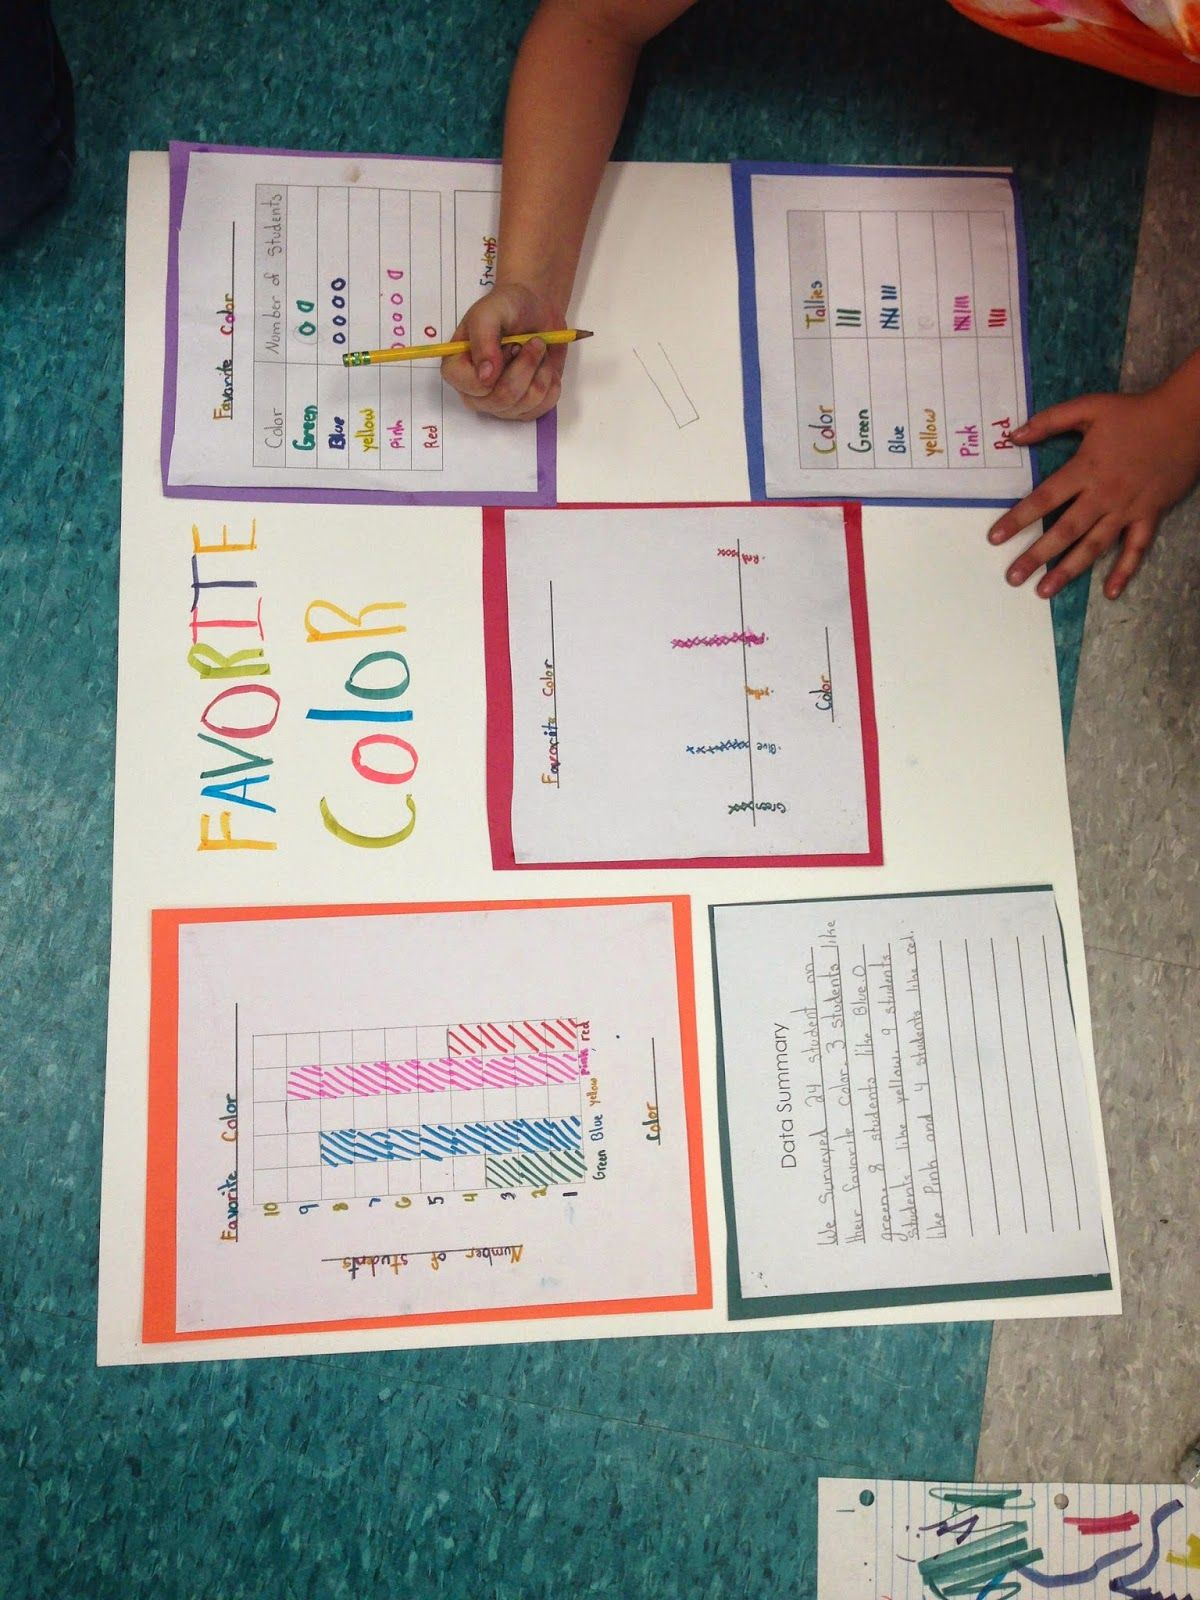 Pin by Learning Lab Resources - Melis on Third Grade Teaching Ideas    Graphing project [ 1600 x 1200 Pixel ]